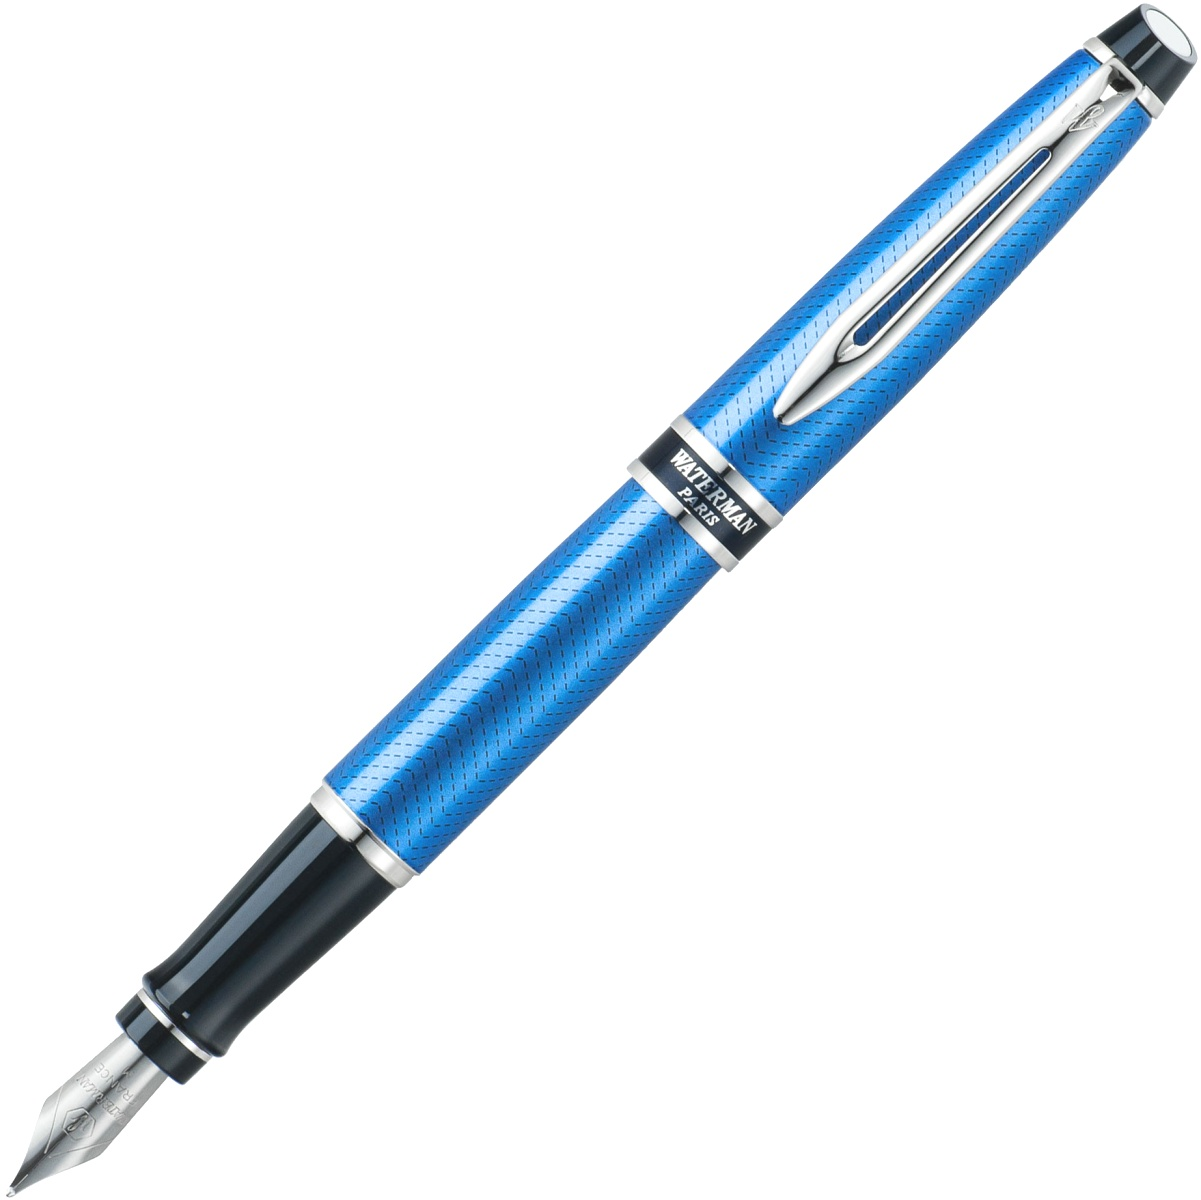 Перьевая ручка Waterman Expert 2 City Line, Urban Blue (Перо M)